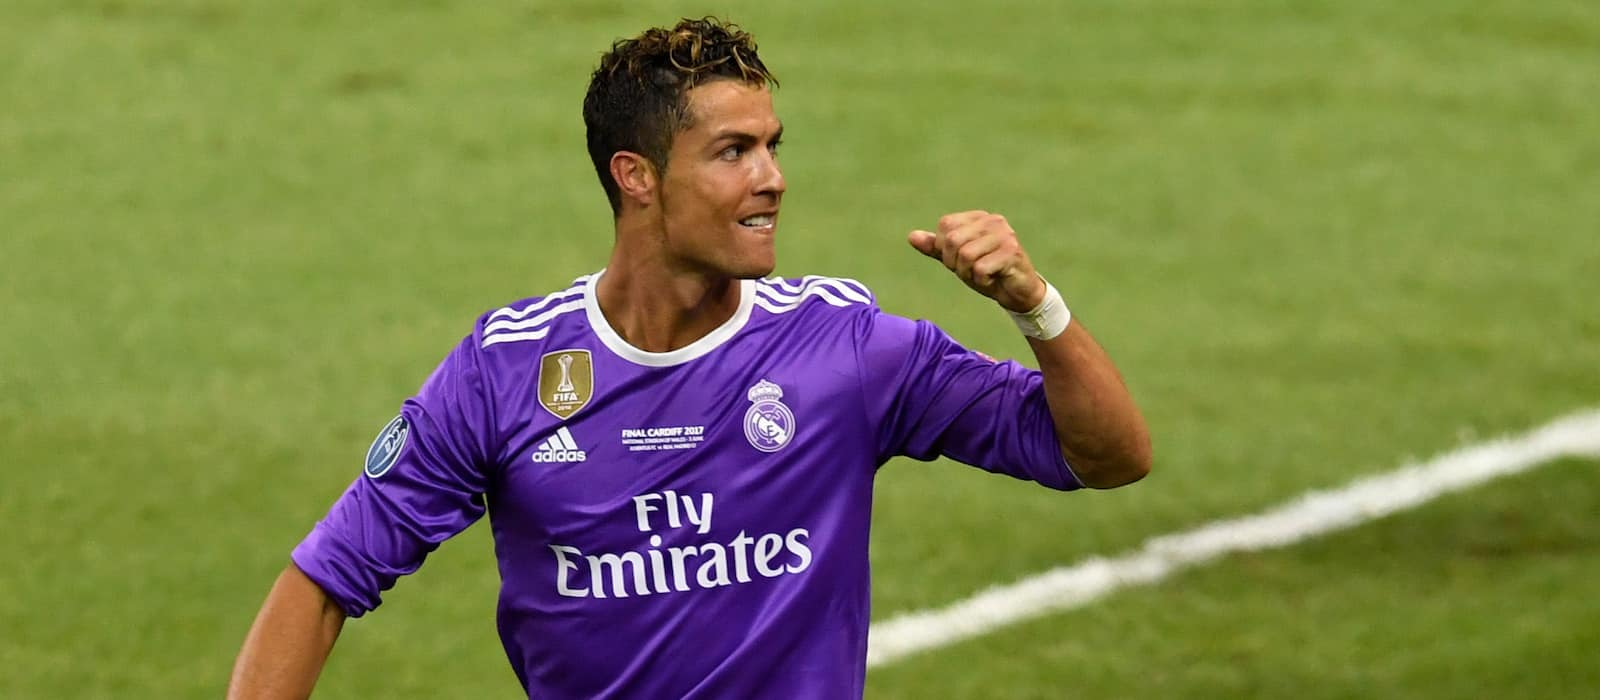 Peter Schmeichel excited about Cristiano Ronaldo's Old Trafford return